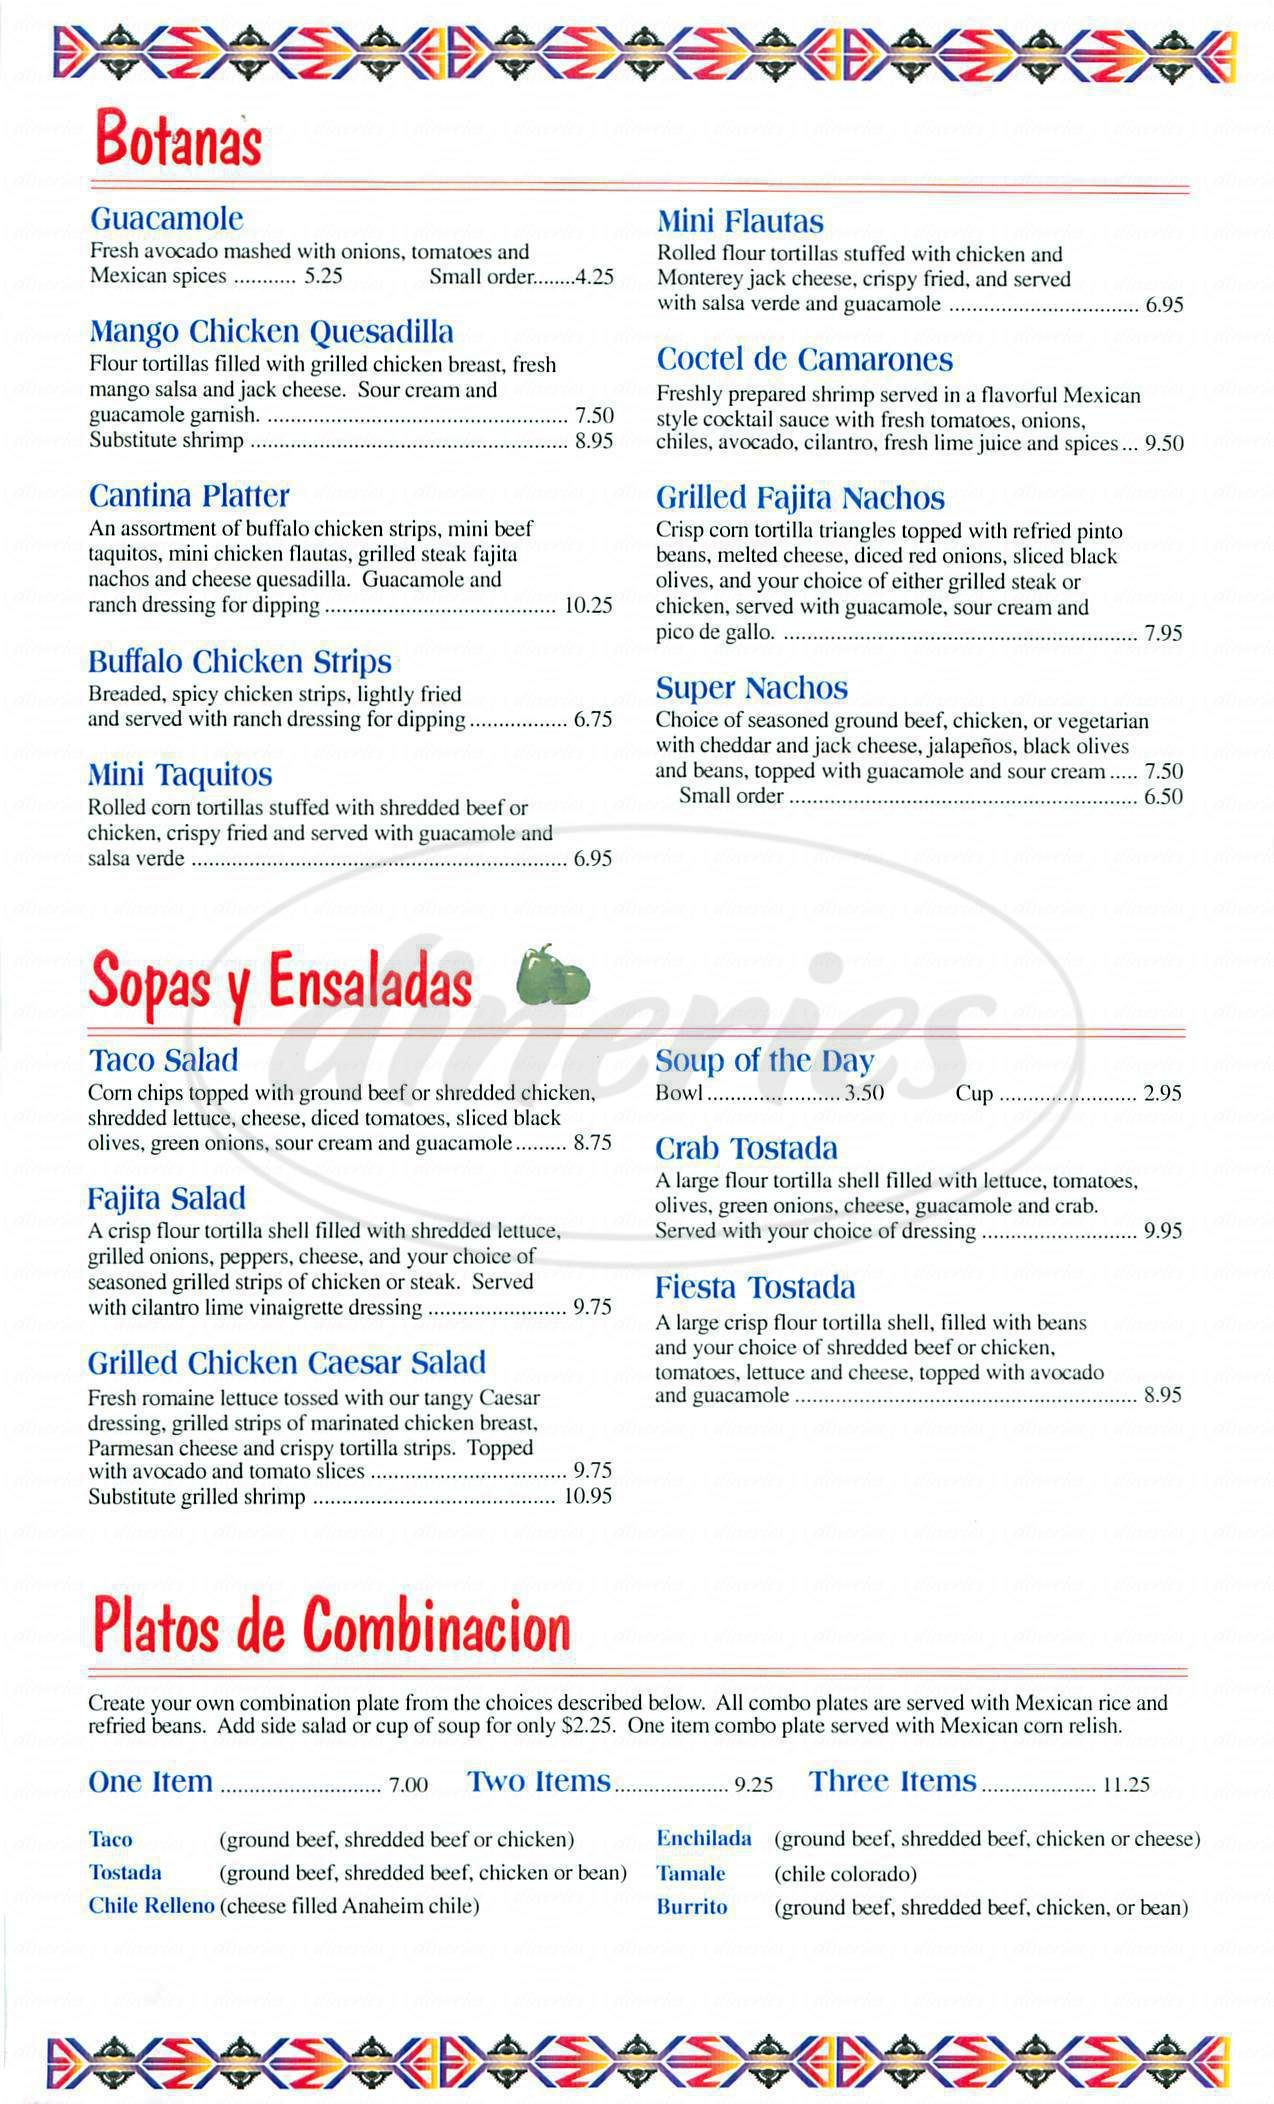 menu for La Paloma